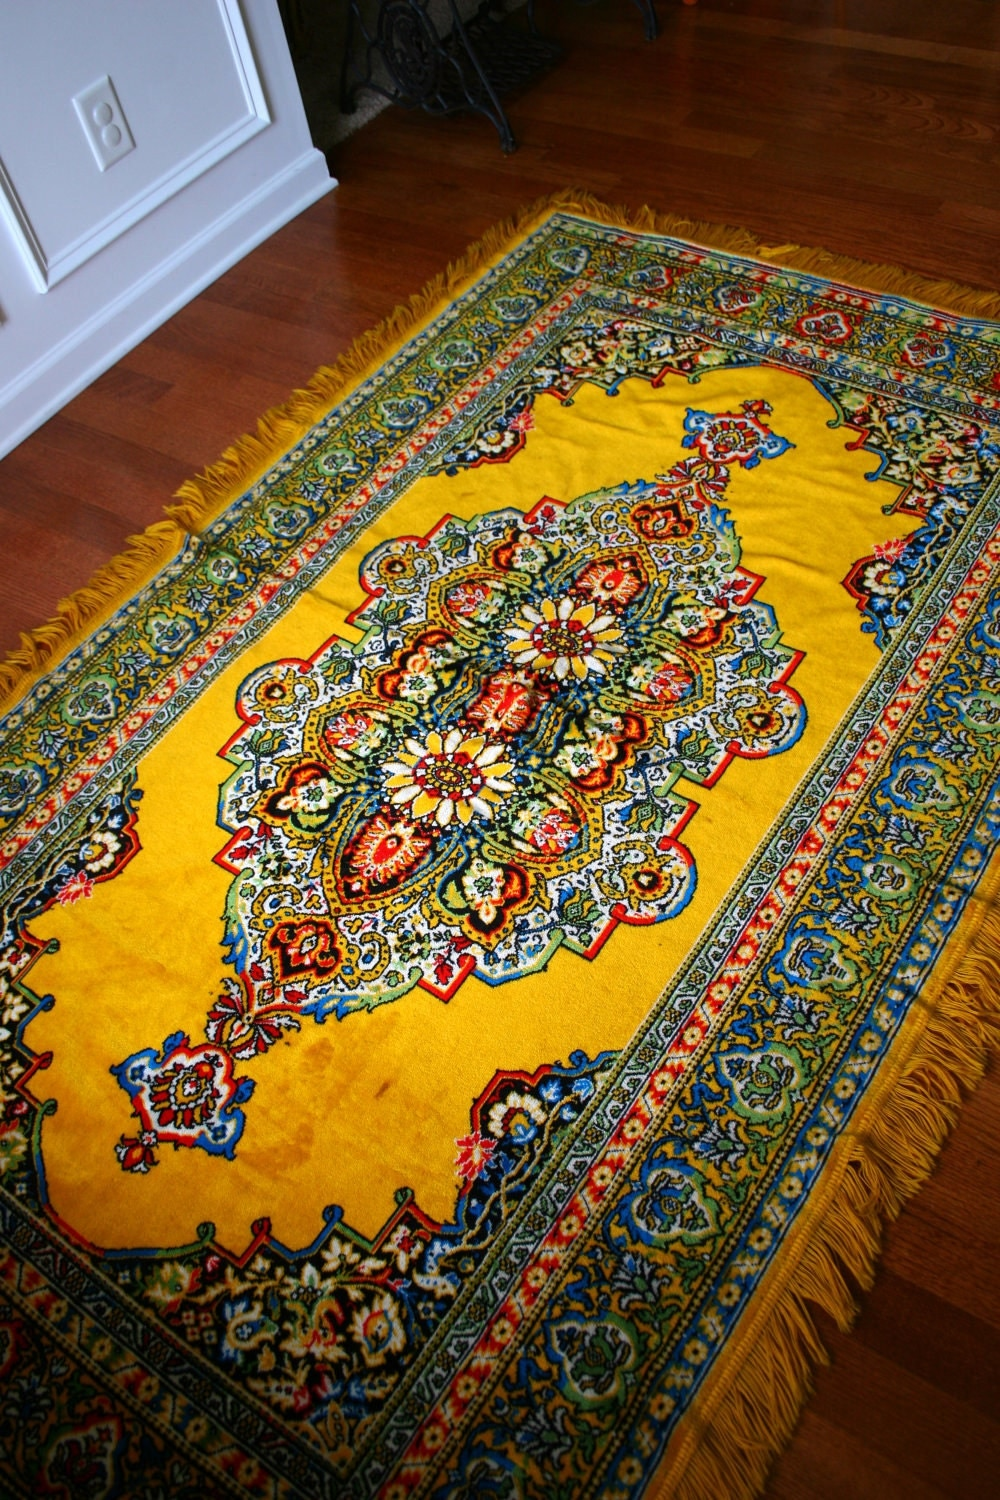 Vintage Rug Golden Yellow Eclectic Bohemian Home Decor